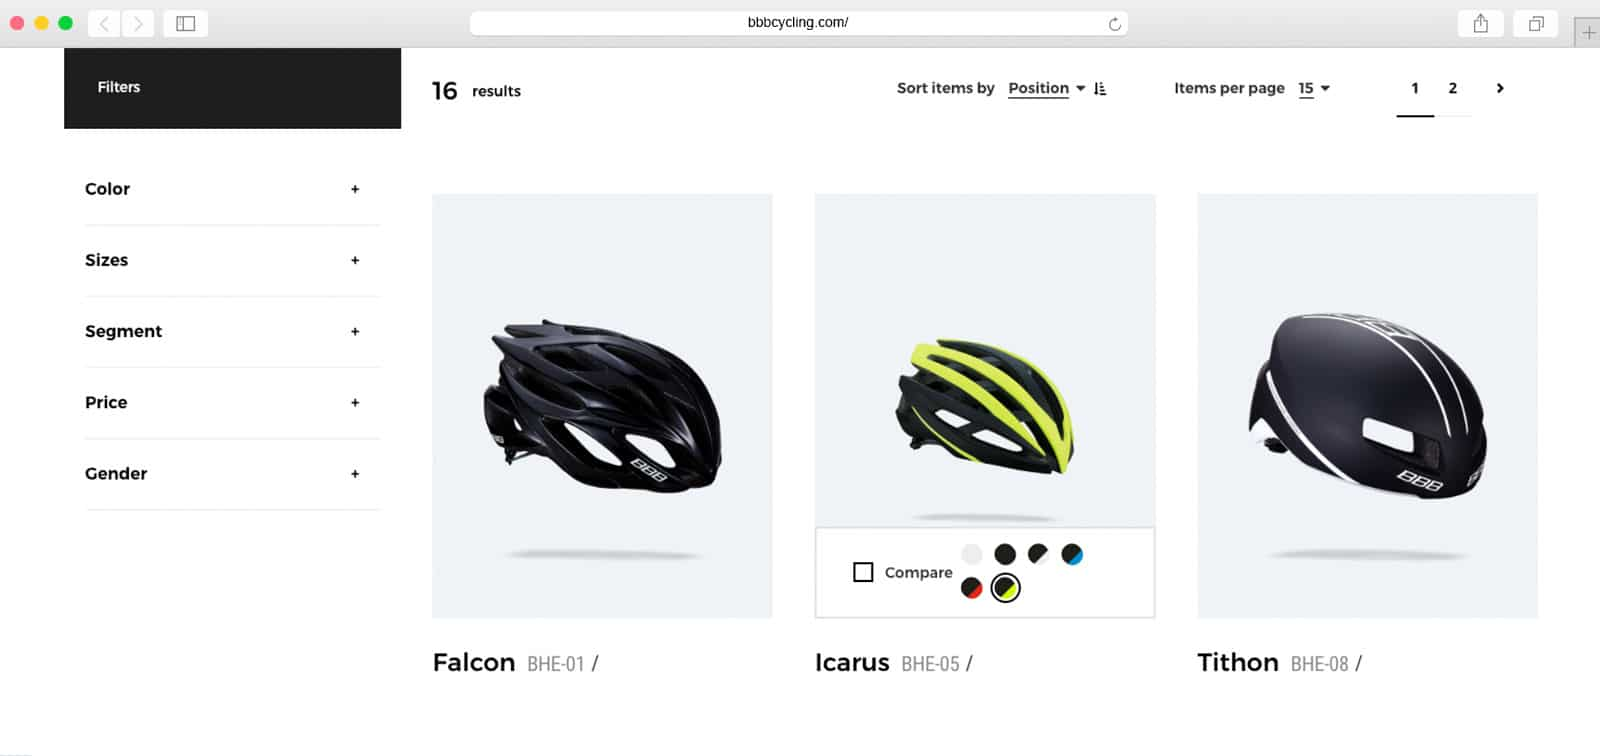 Screen_BBBCycling_Catalog